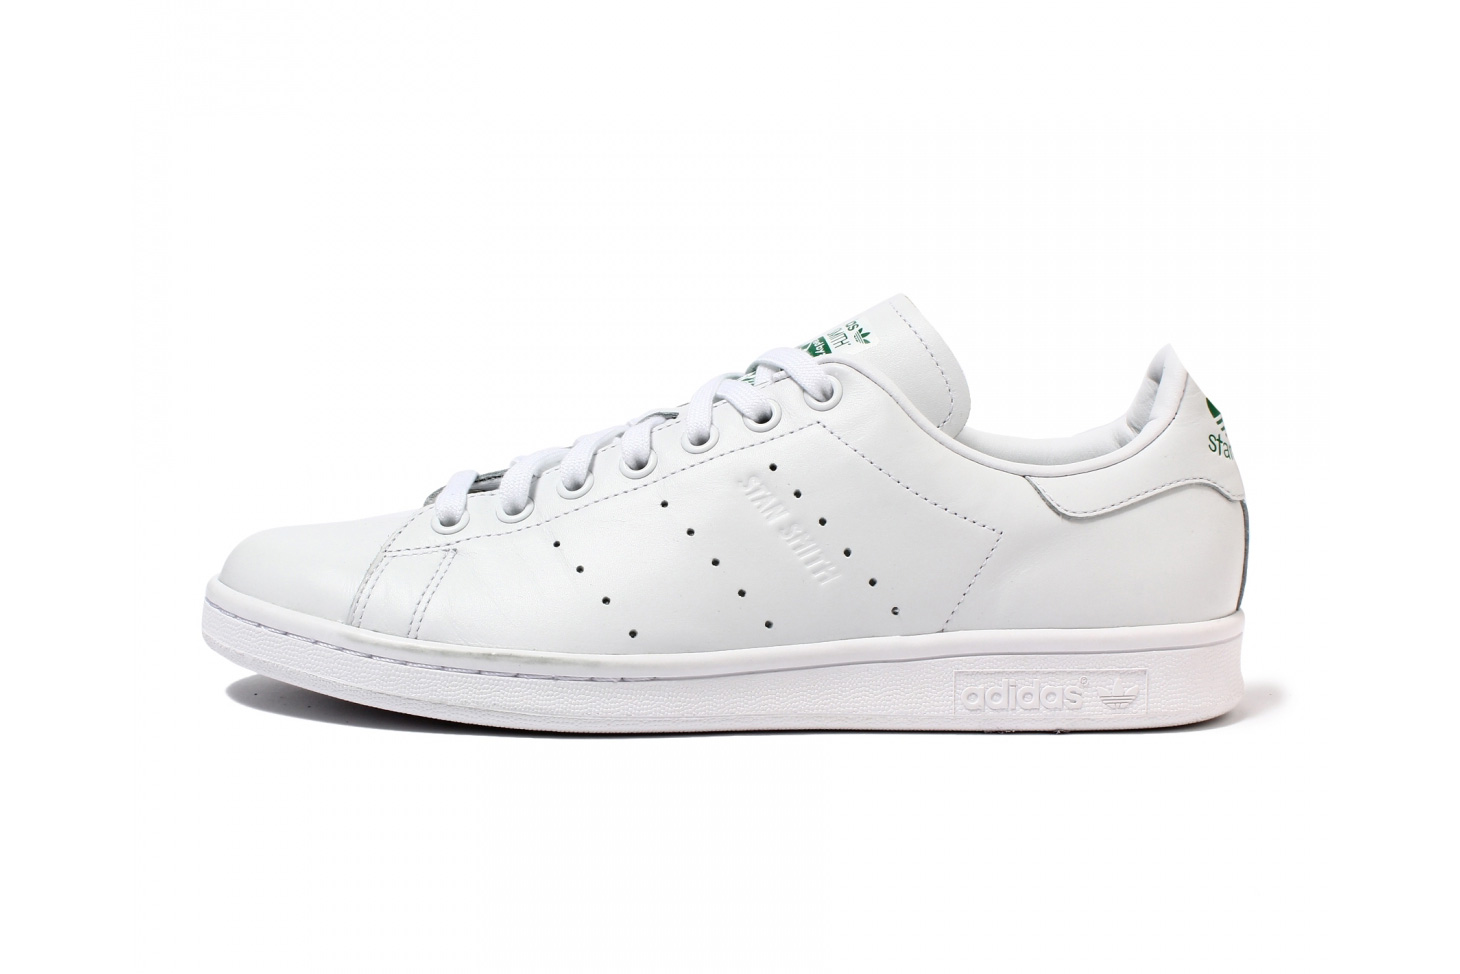 BEAMS Teams up With adidas Originals to Offer an Inverted Stan Smith